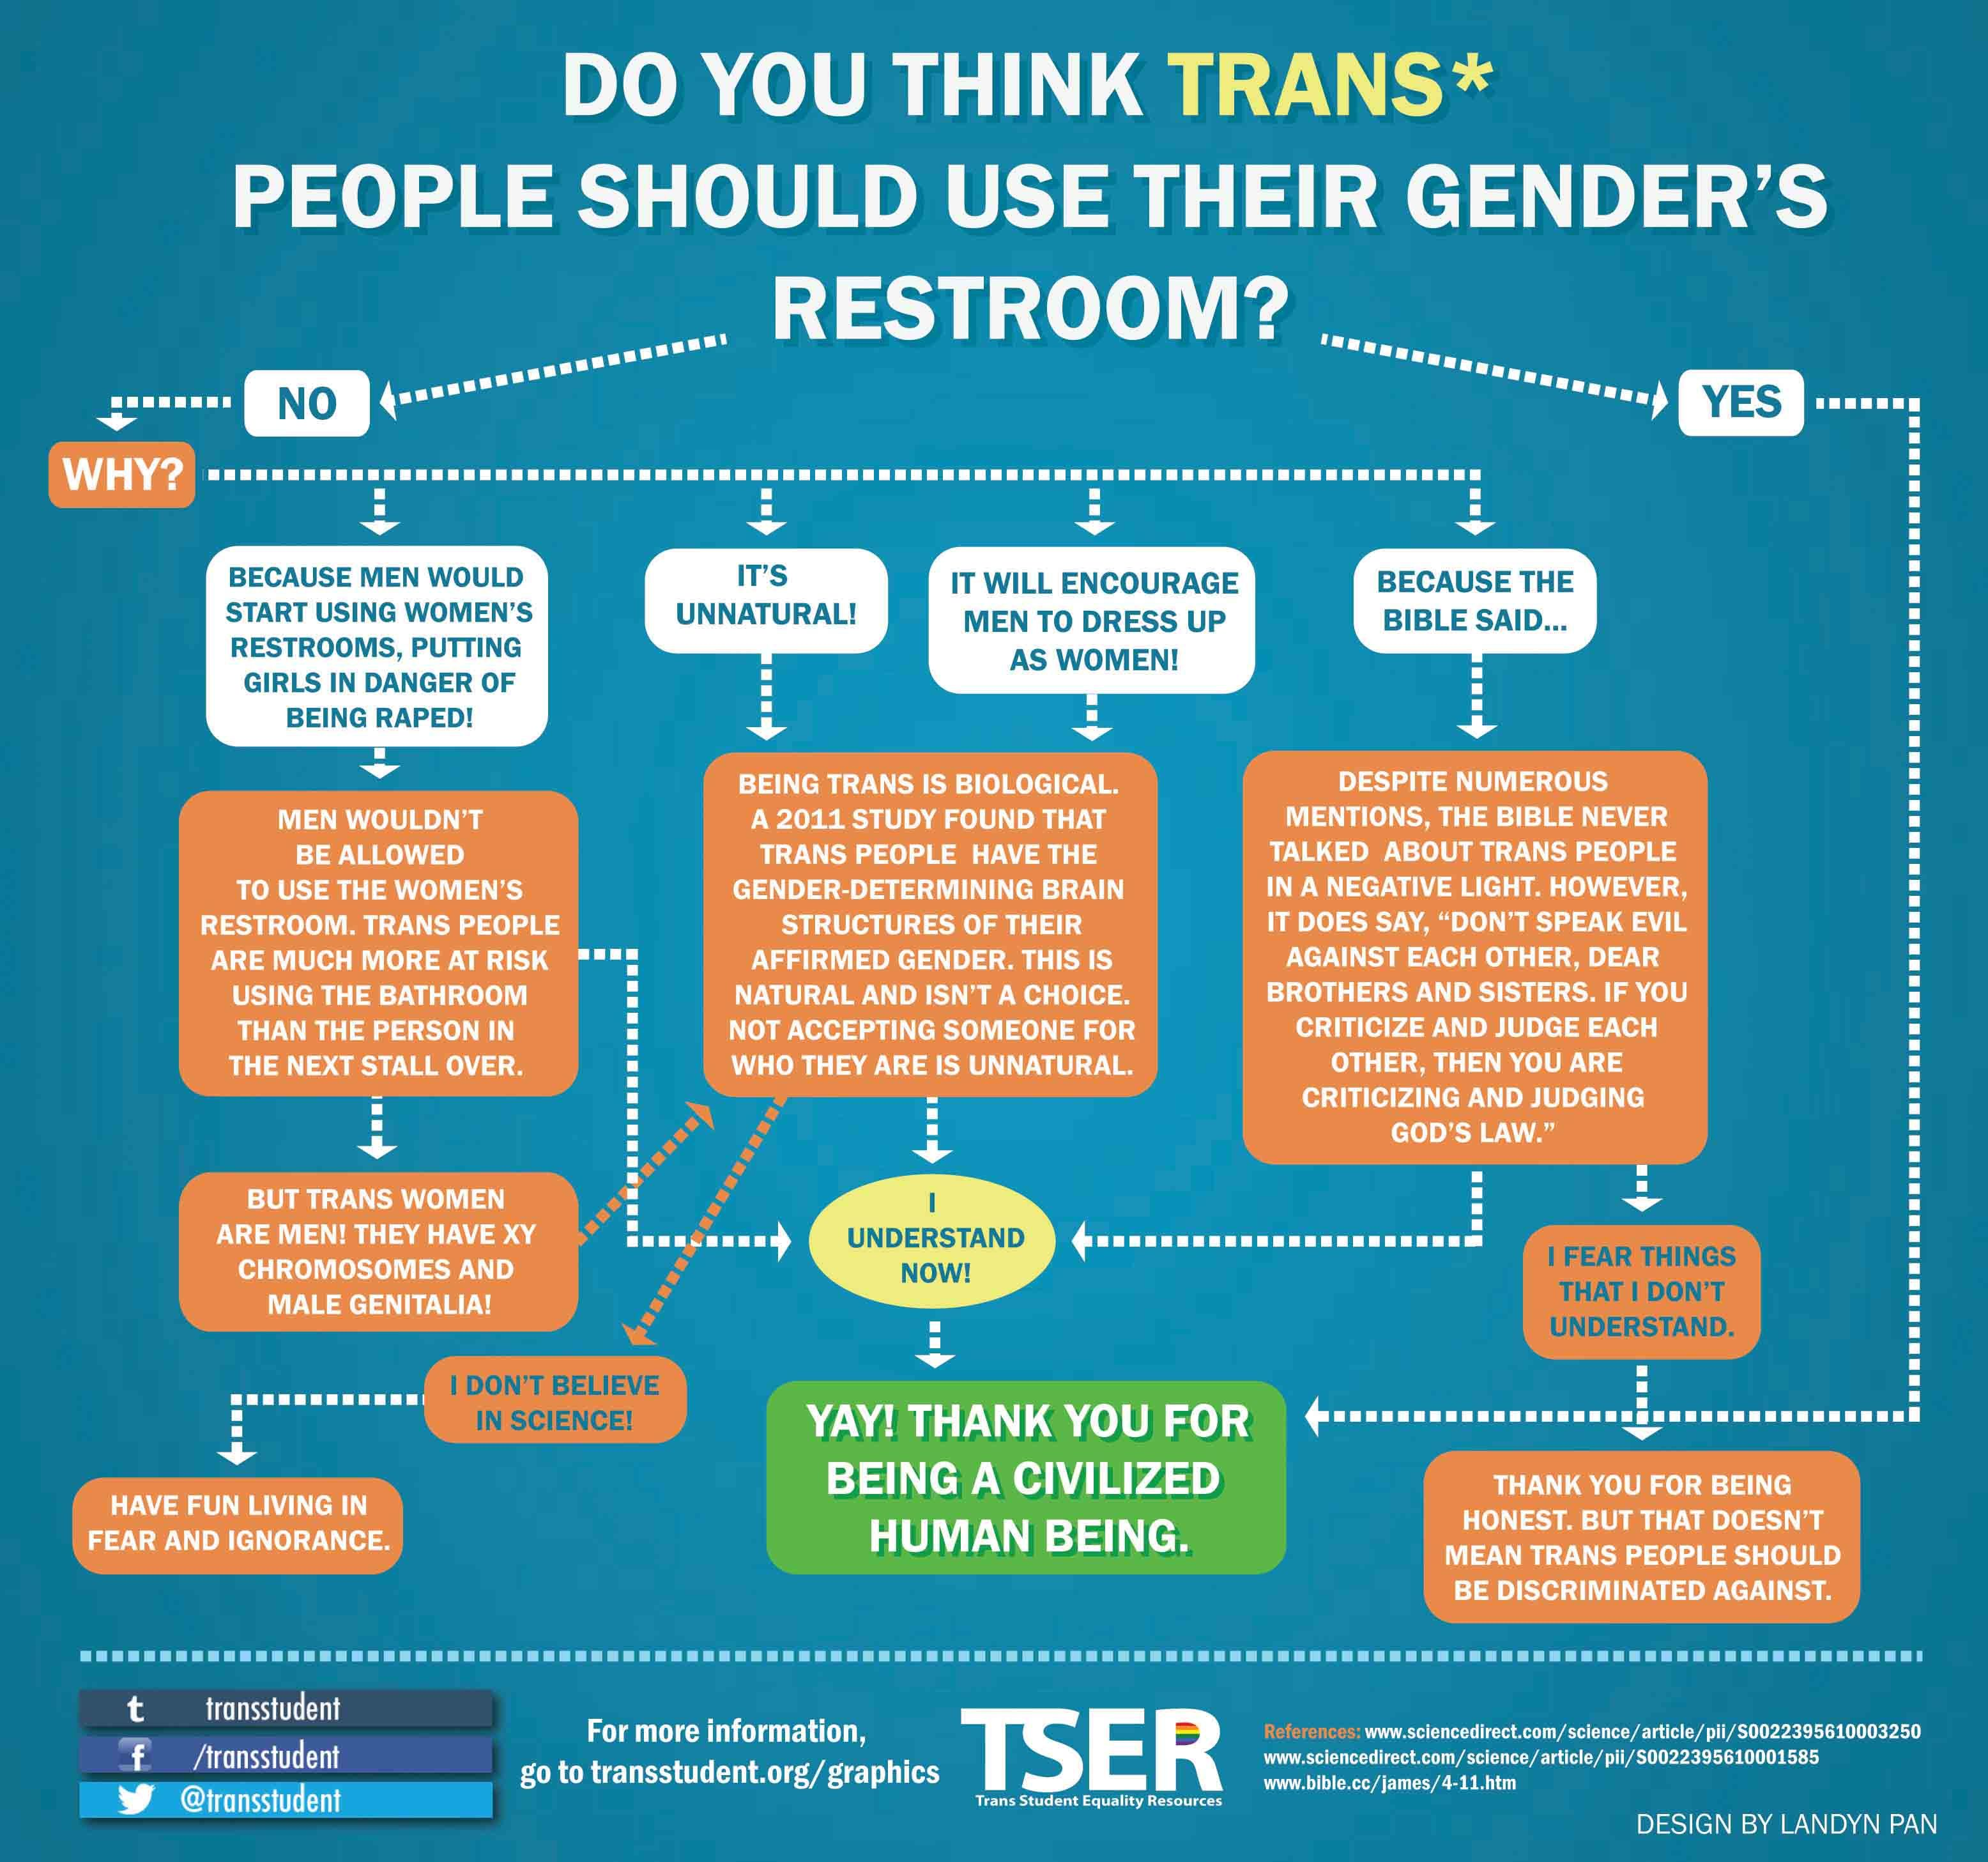 17 best images about place transgender | you think, student and